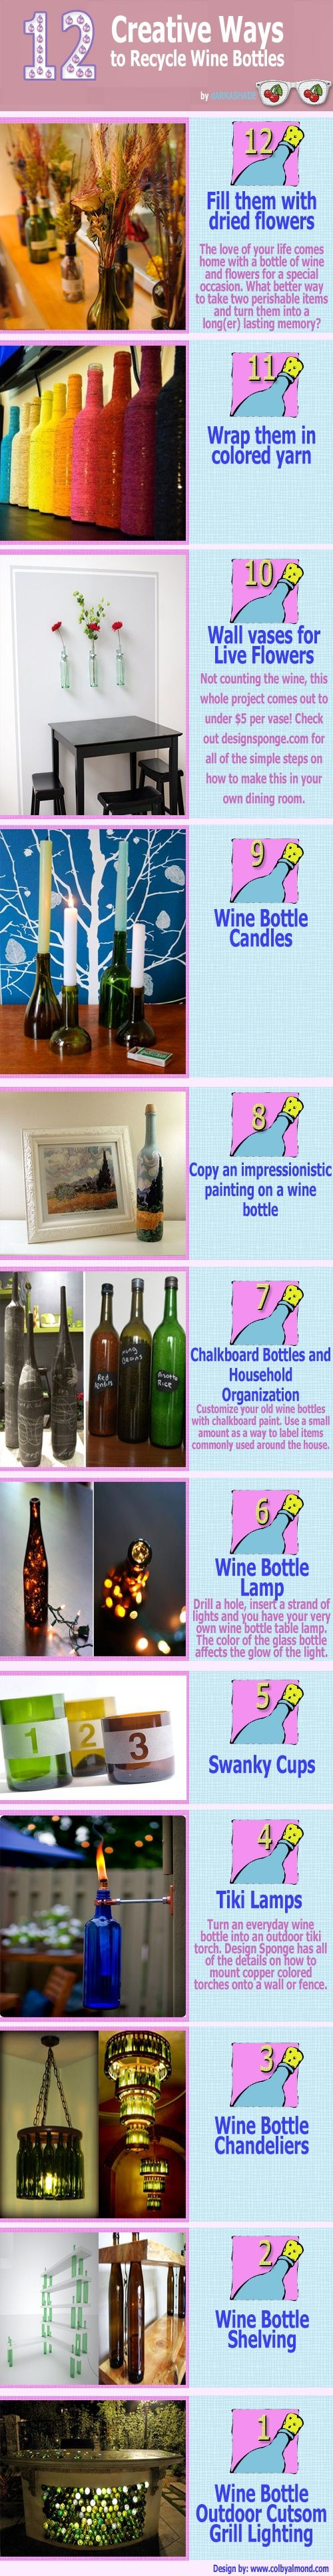 12 ways to recycle wine bottles. Some are pretty nice and I might try them out!